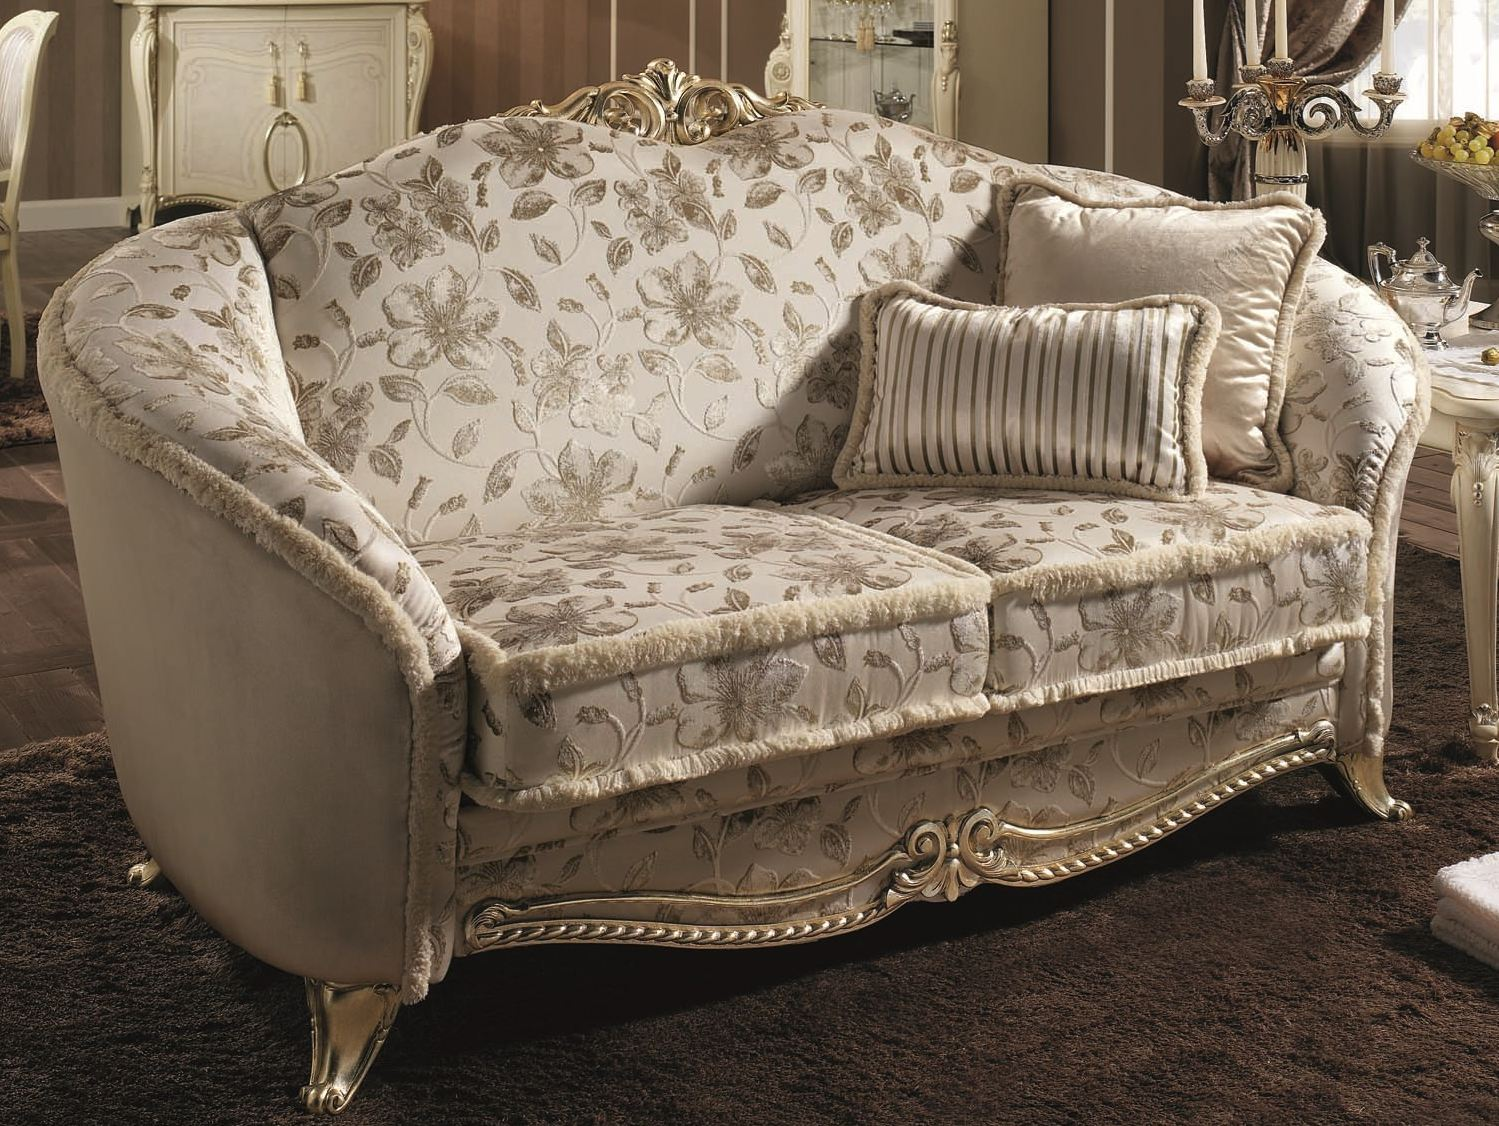 CLASSIC STYLE UPHOLSTERED 2 SEATER SOFA TIZIANO COLLECTION BY ARREDOCLASSIC